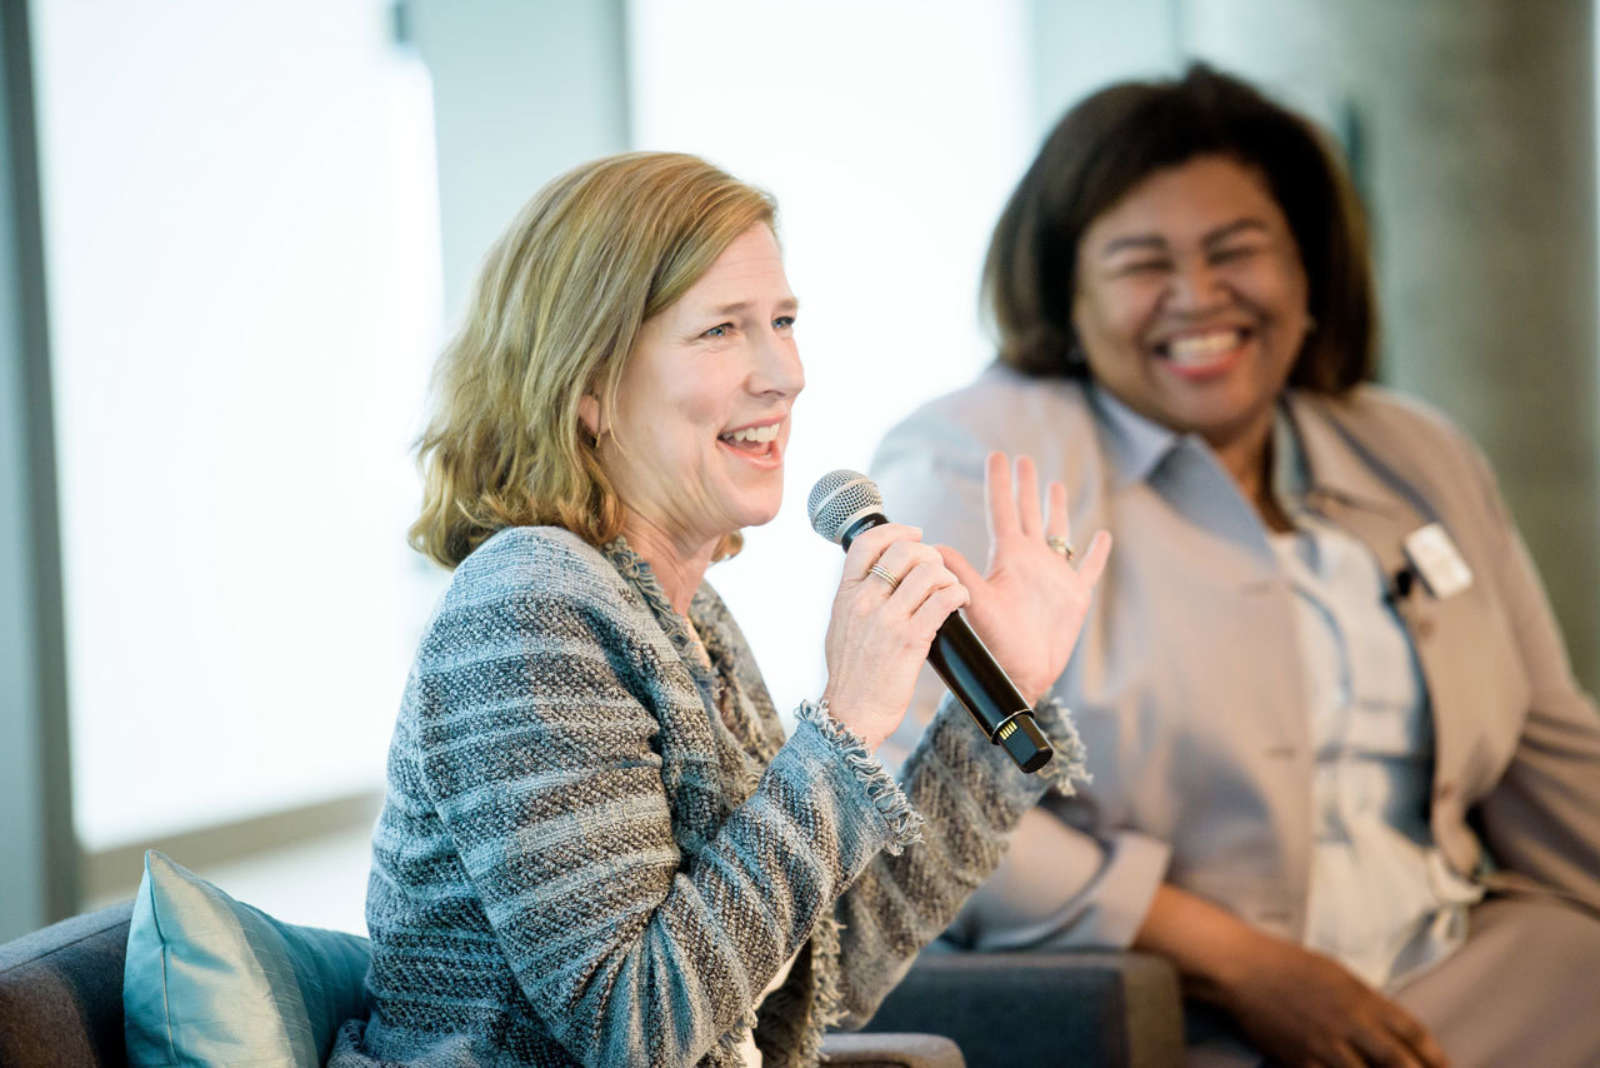 Conference Cheryl McGee Wallace and Sara Dickison Taylor fireside chat laughing